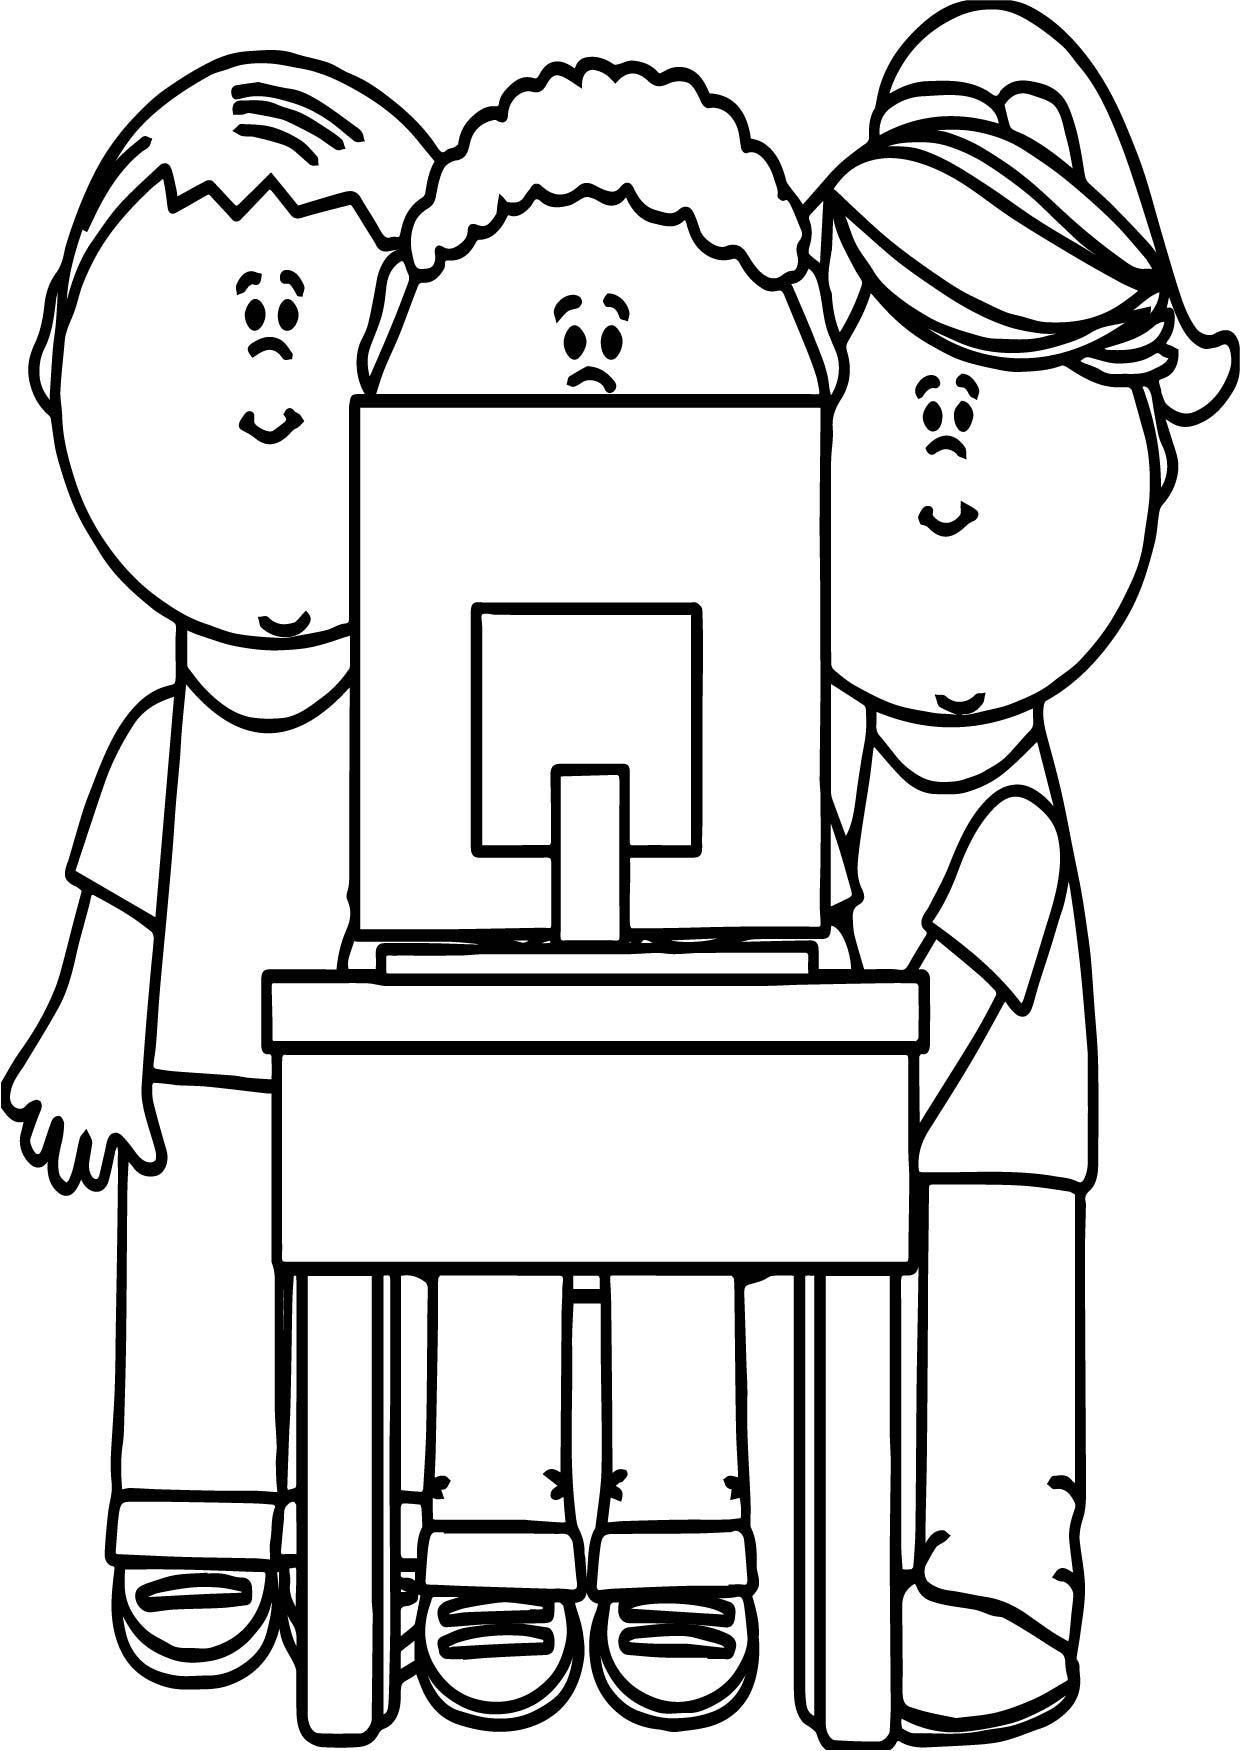 Interactive Coloring Pages Interactive Coloring Pages For